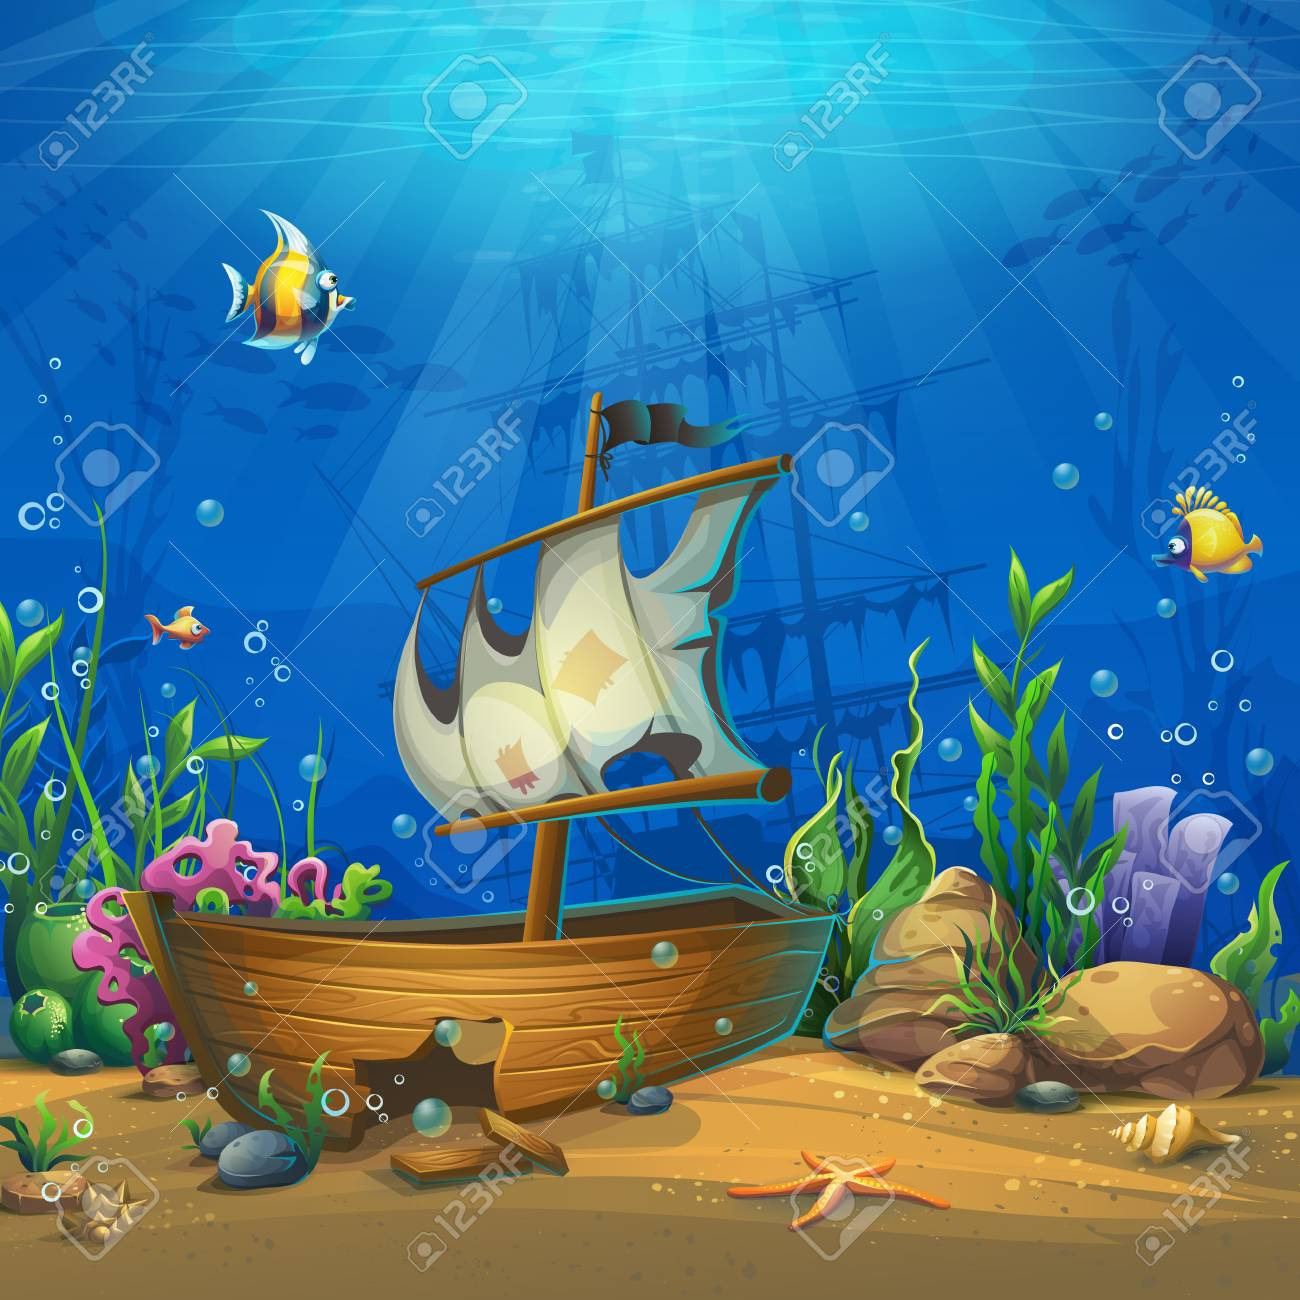 Undersea world with ship - 106202793